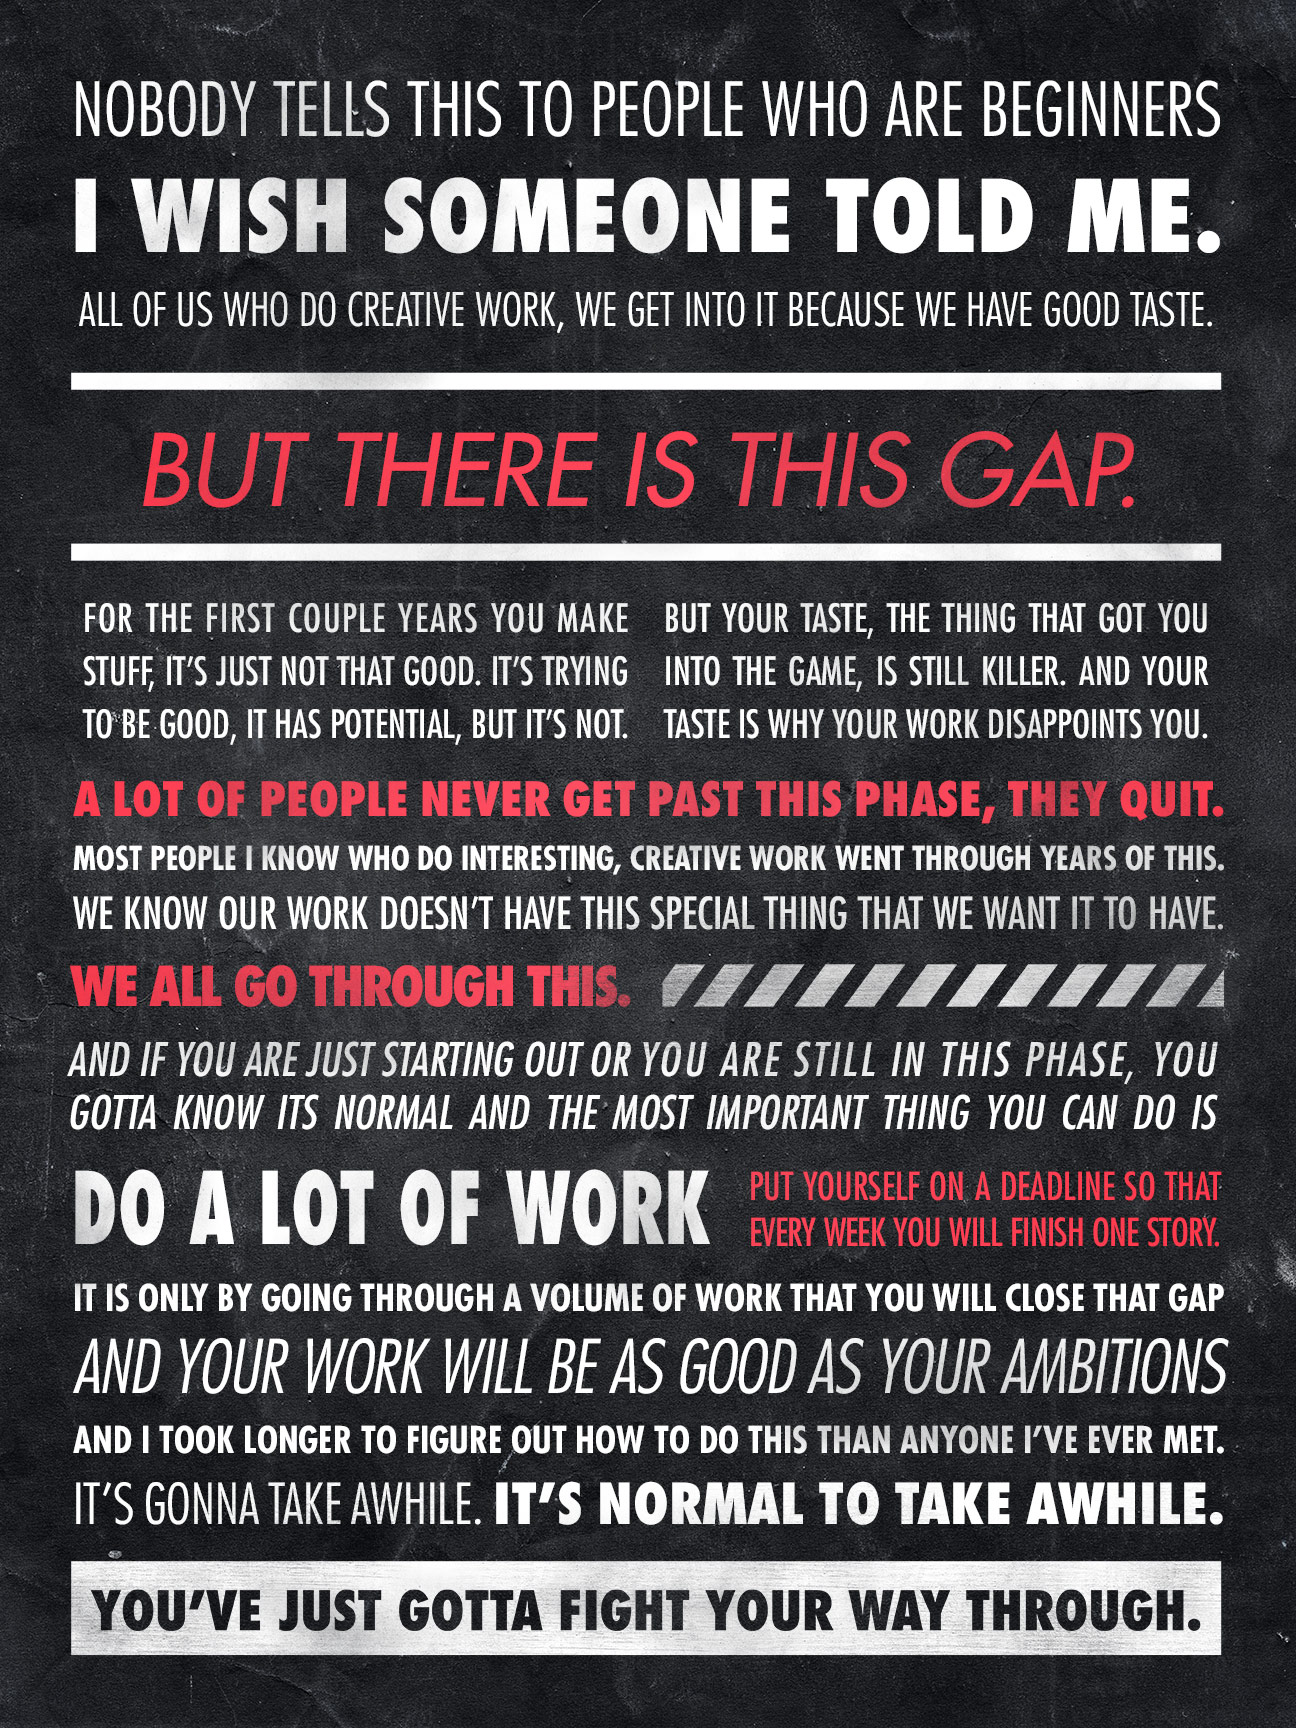 [Image] You've just gotta fight your way through